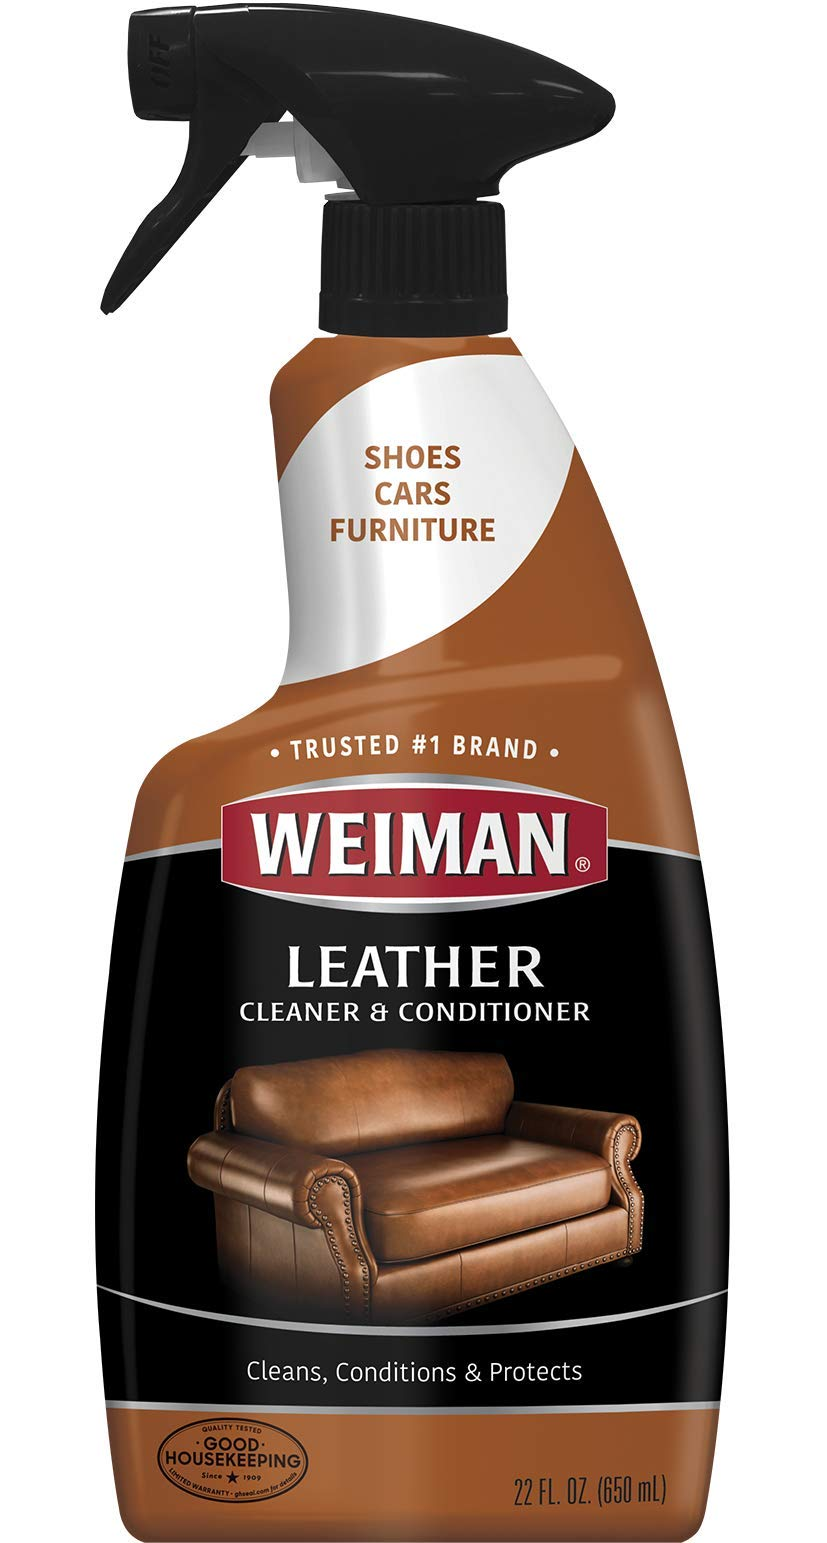 Weiman Leather Cleaner and Conditioner for Furniture - 22 Ounce - Cleans Conditions and Restores Leather Surfaces - UV Protectants Help Prevent Cracking or Fading of Leather Car Seats, Shoes, Purses by Weiman